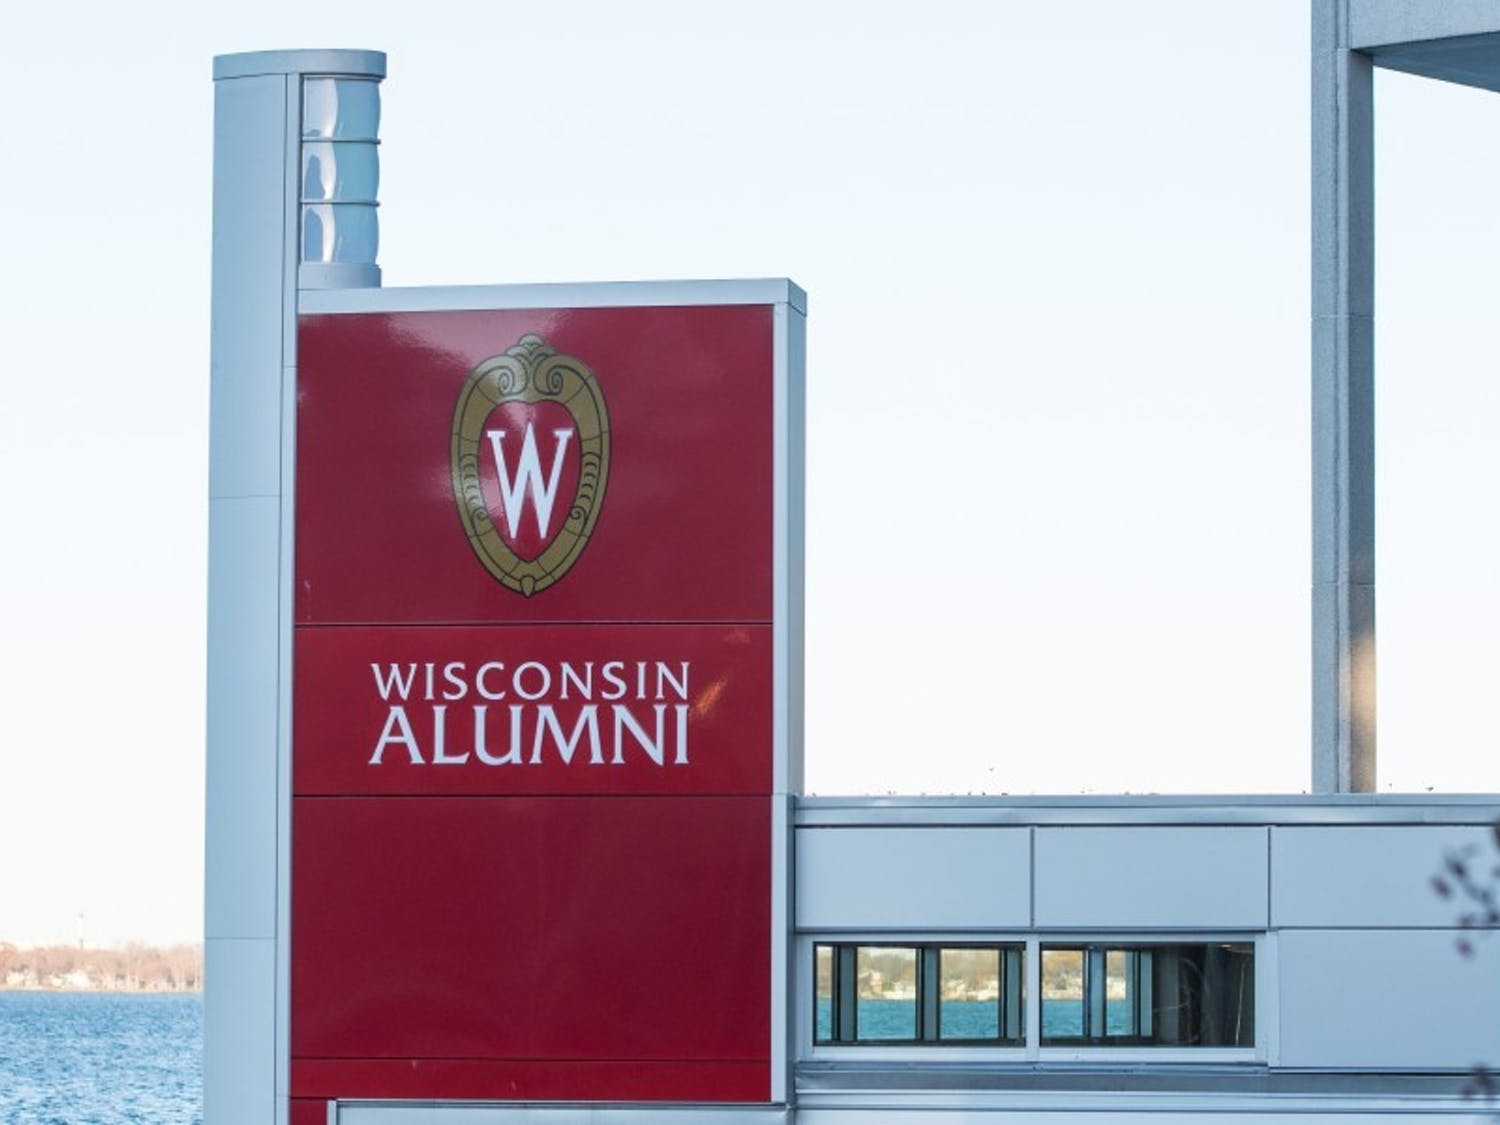 The Wisconsin Alumni Association shared their sadness regarding Sunday's attacks in a message sent to UW-Madison community members Monday.